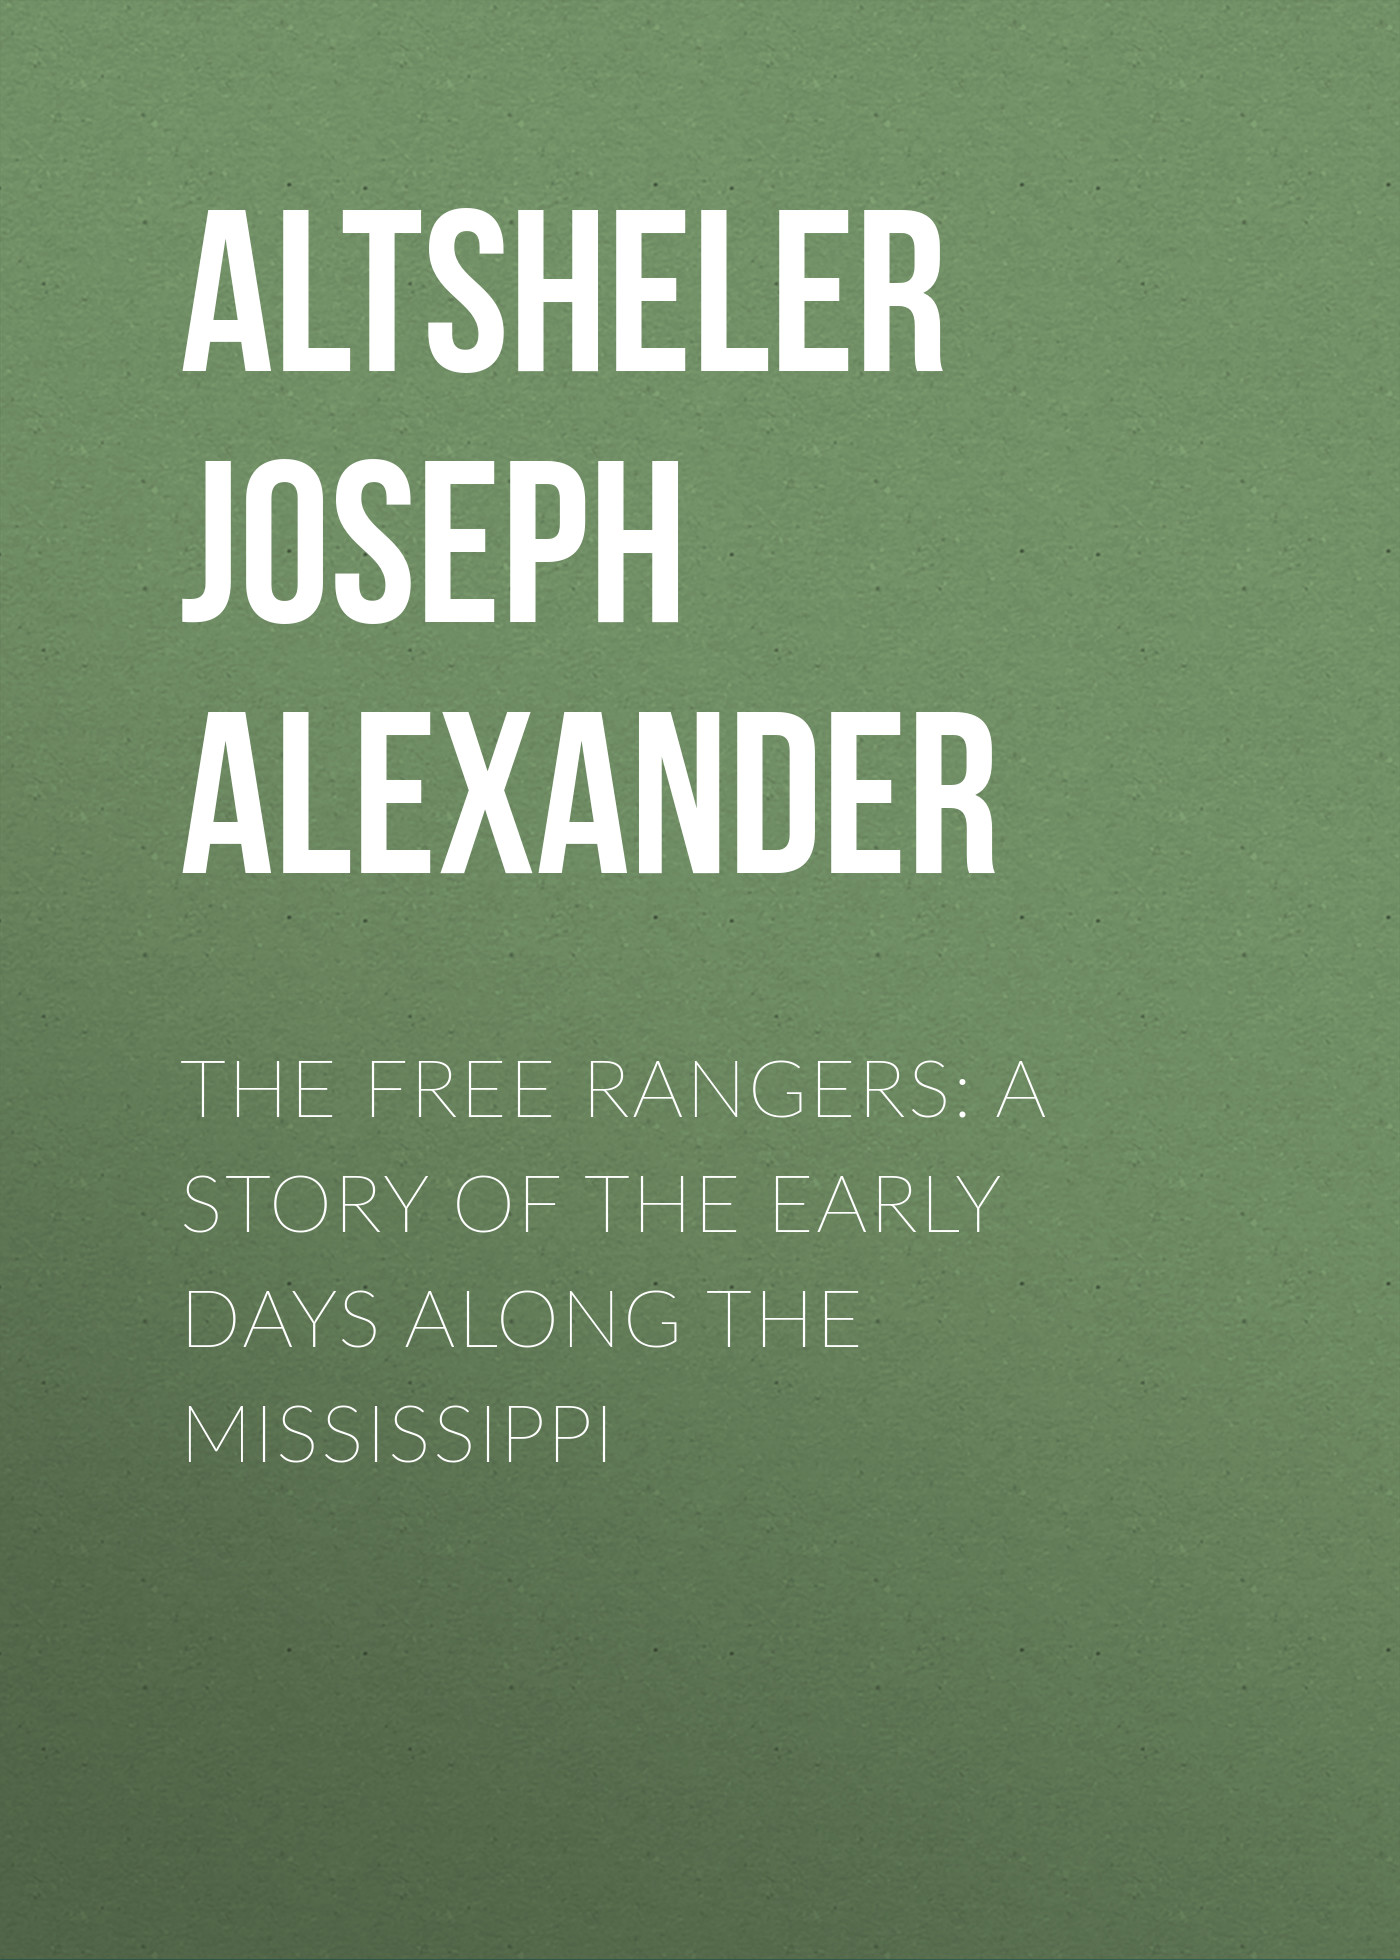 Altsheler Joseph Alexander The Free Rangers: A Story of the Early Days Along the Mississippi